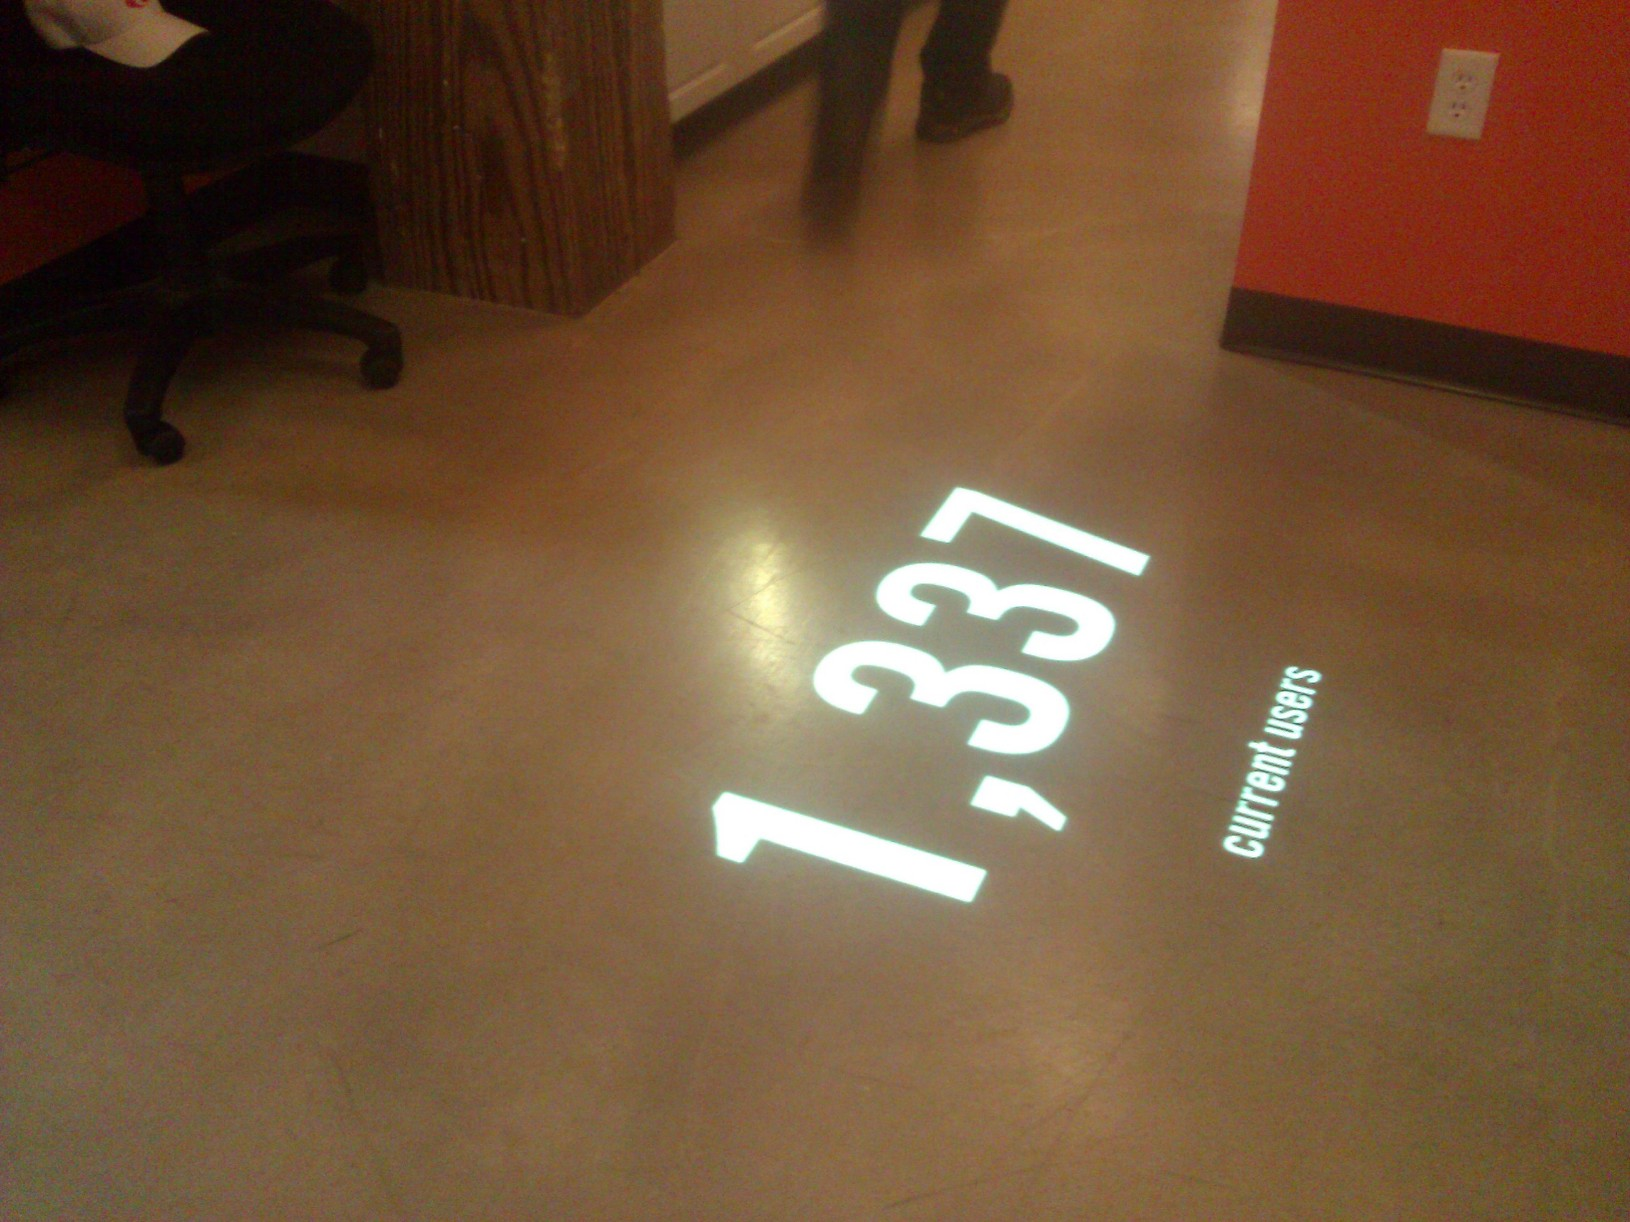 Current Users projected onto a floor